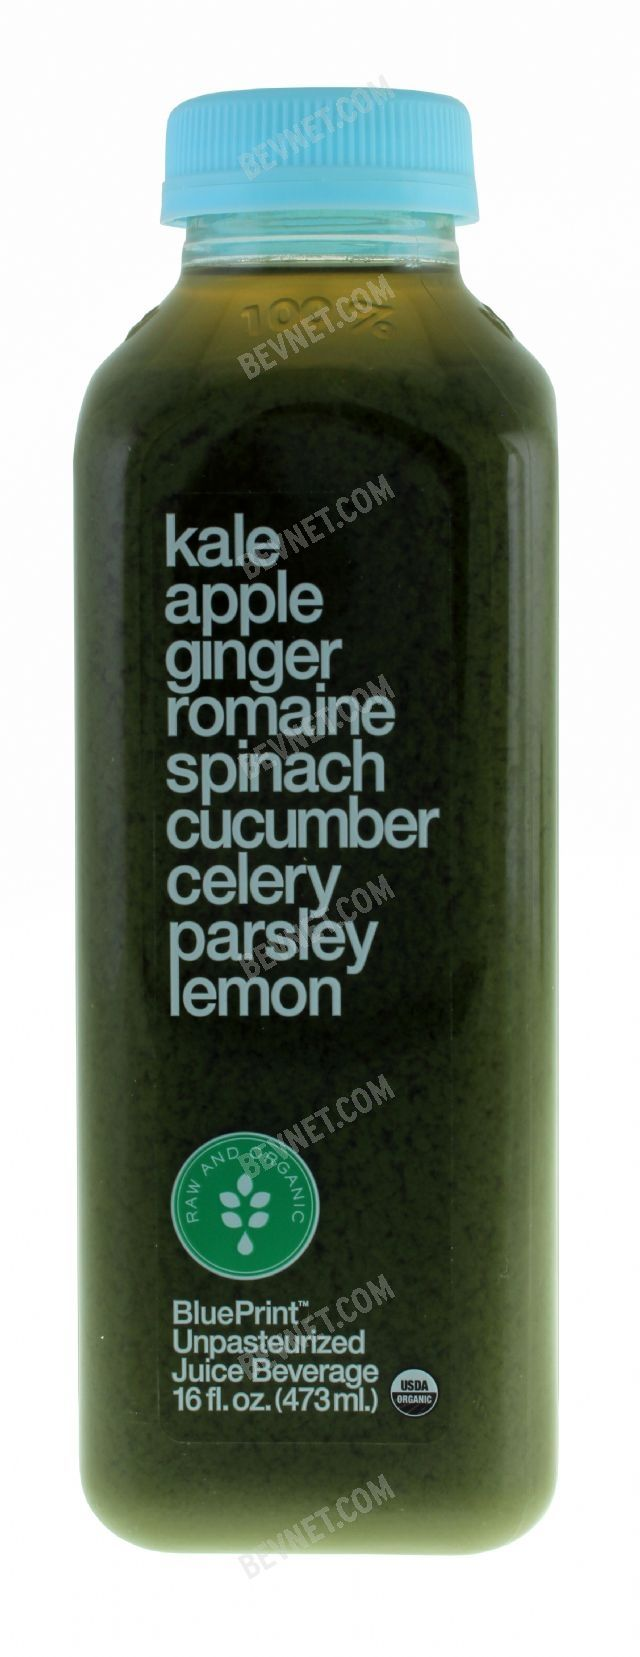 Blueprint juice all products bevnet bevnet kale apple ginger romaine spinach cucumber celery parsley lemon malvernweather Gallery